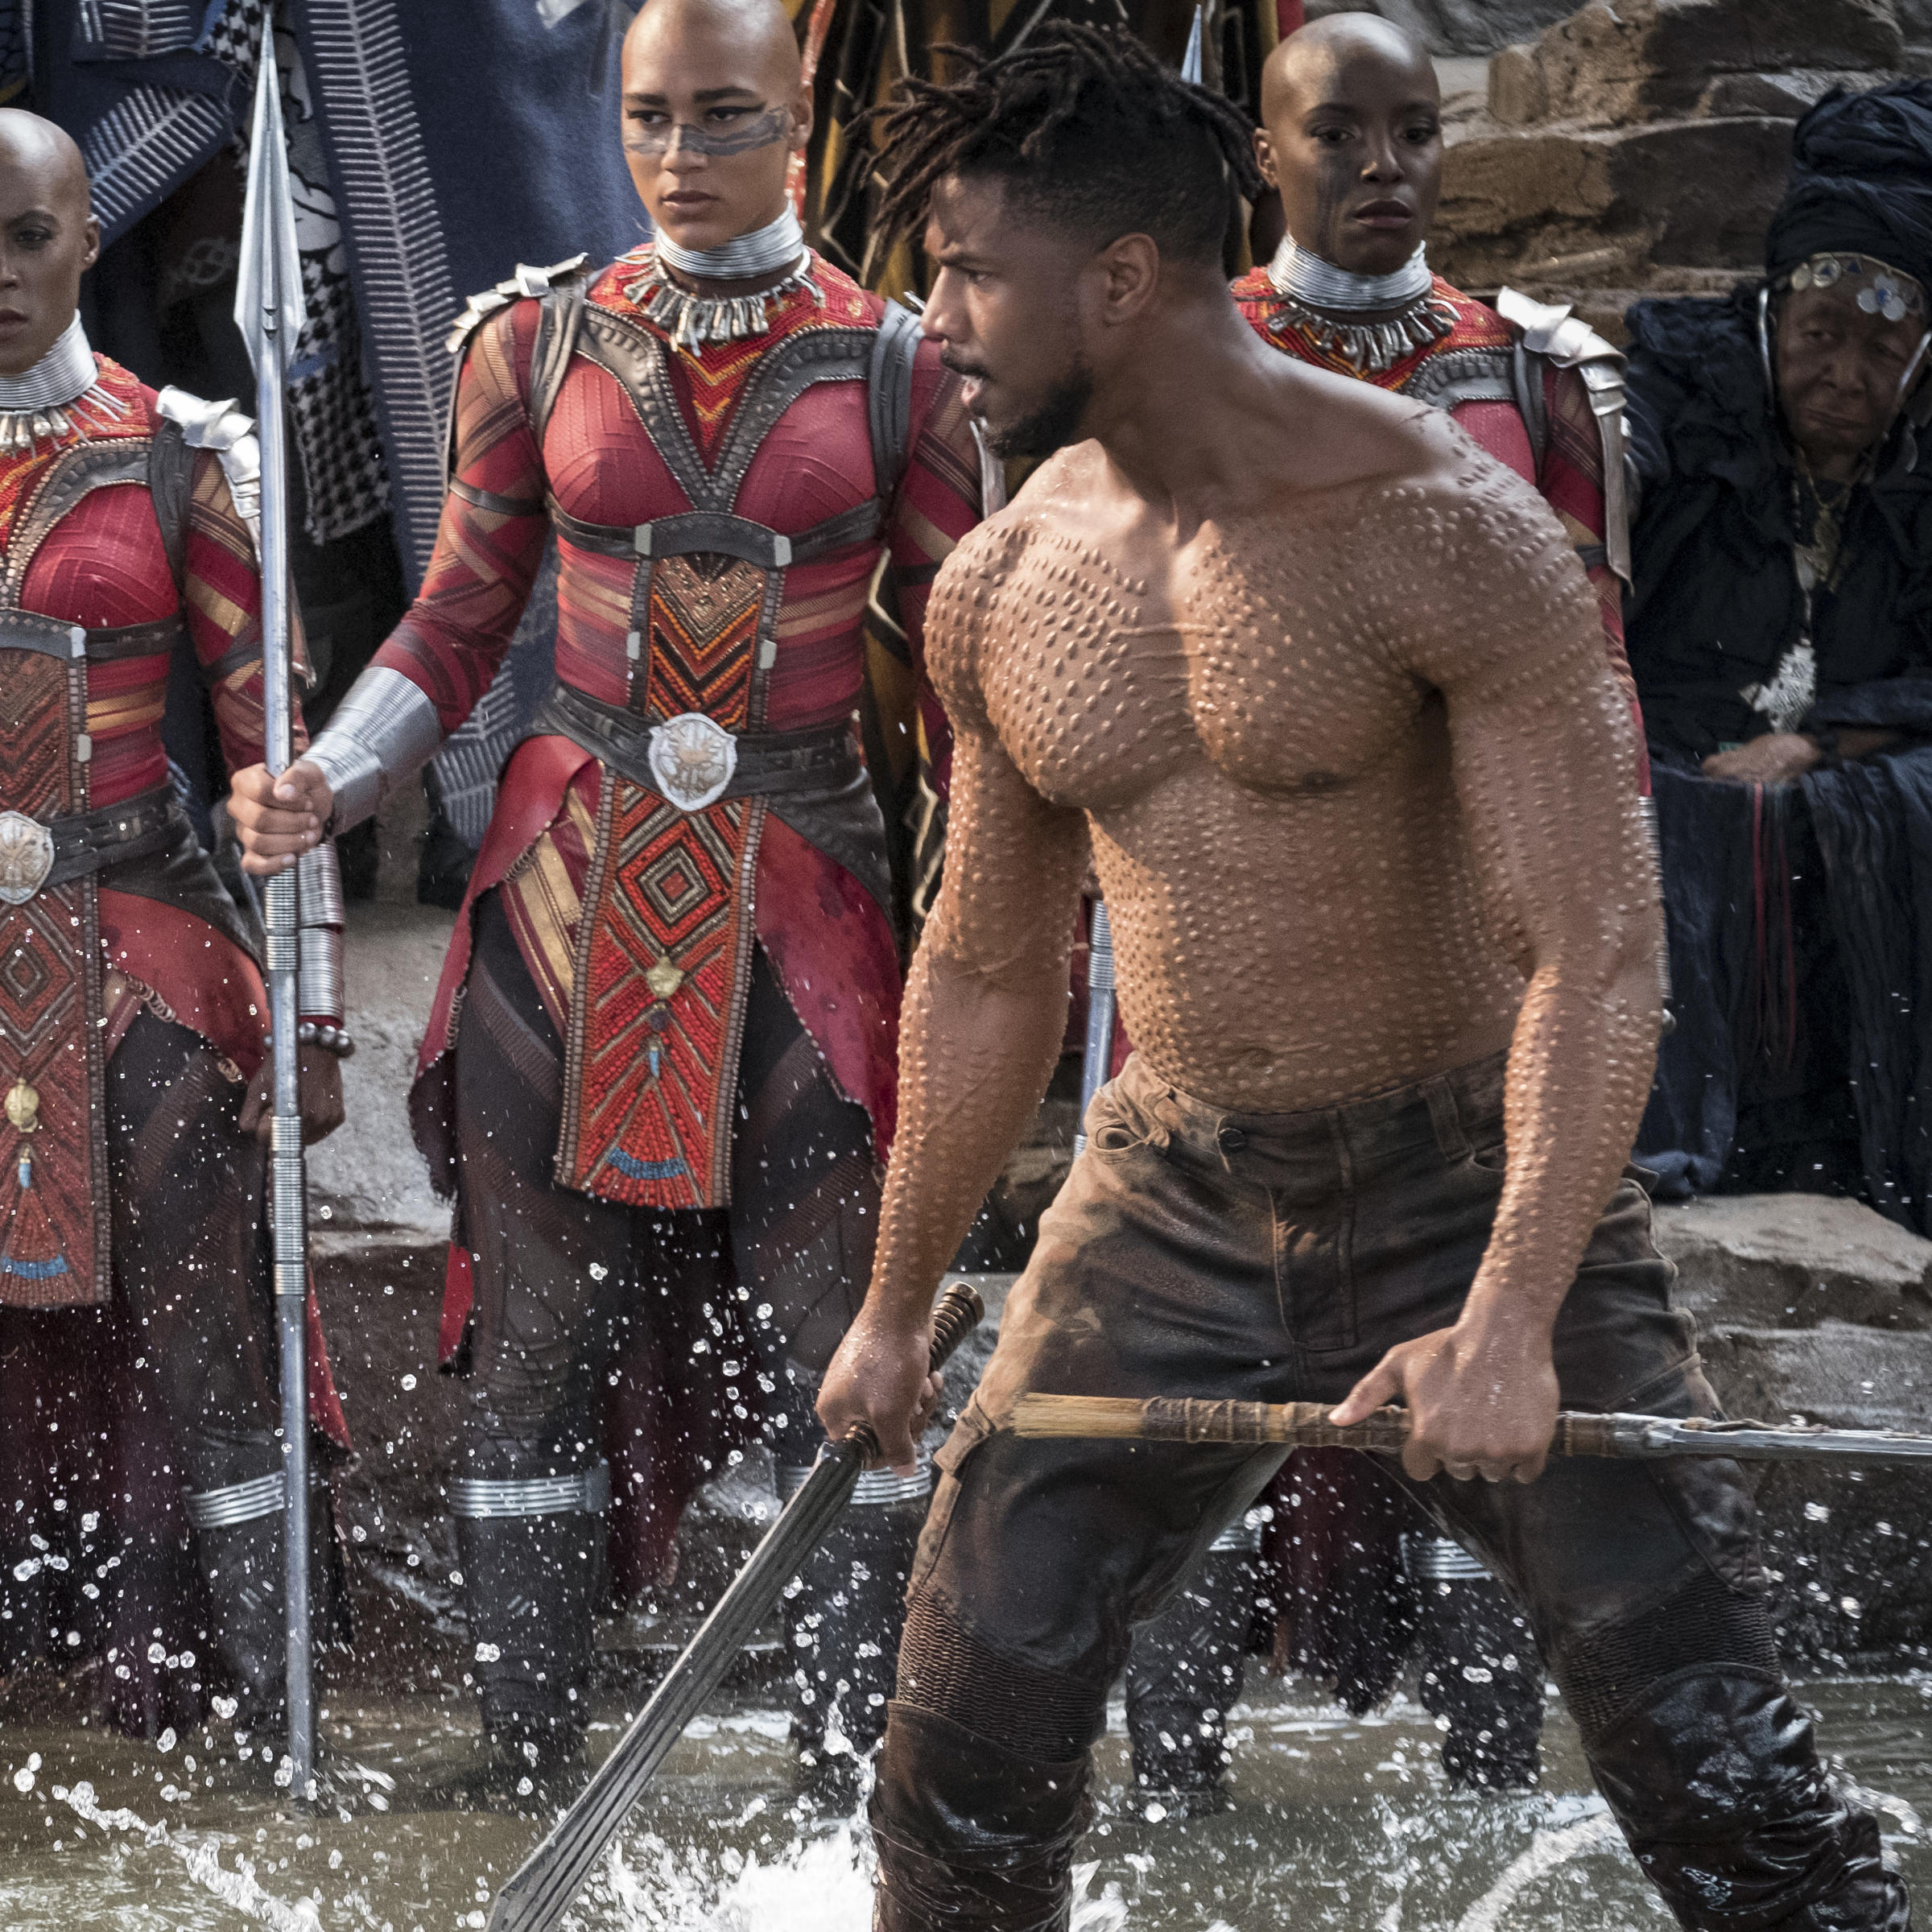 37b0e29c4a2 T'Challa/Black Panther (Chadwick Boseman) and Erik Killmonger (Michael B.  Jordan) settle their differences, Wakanda style.